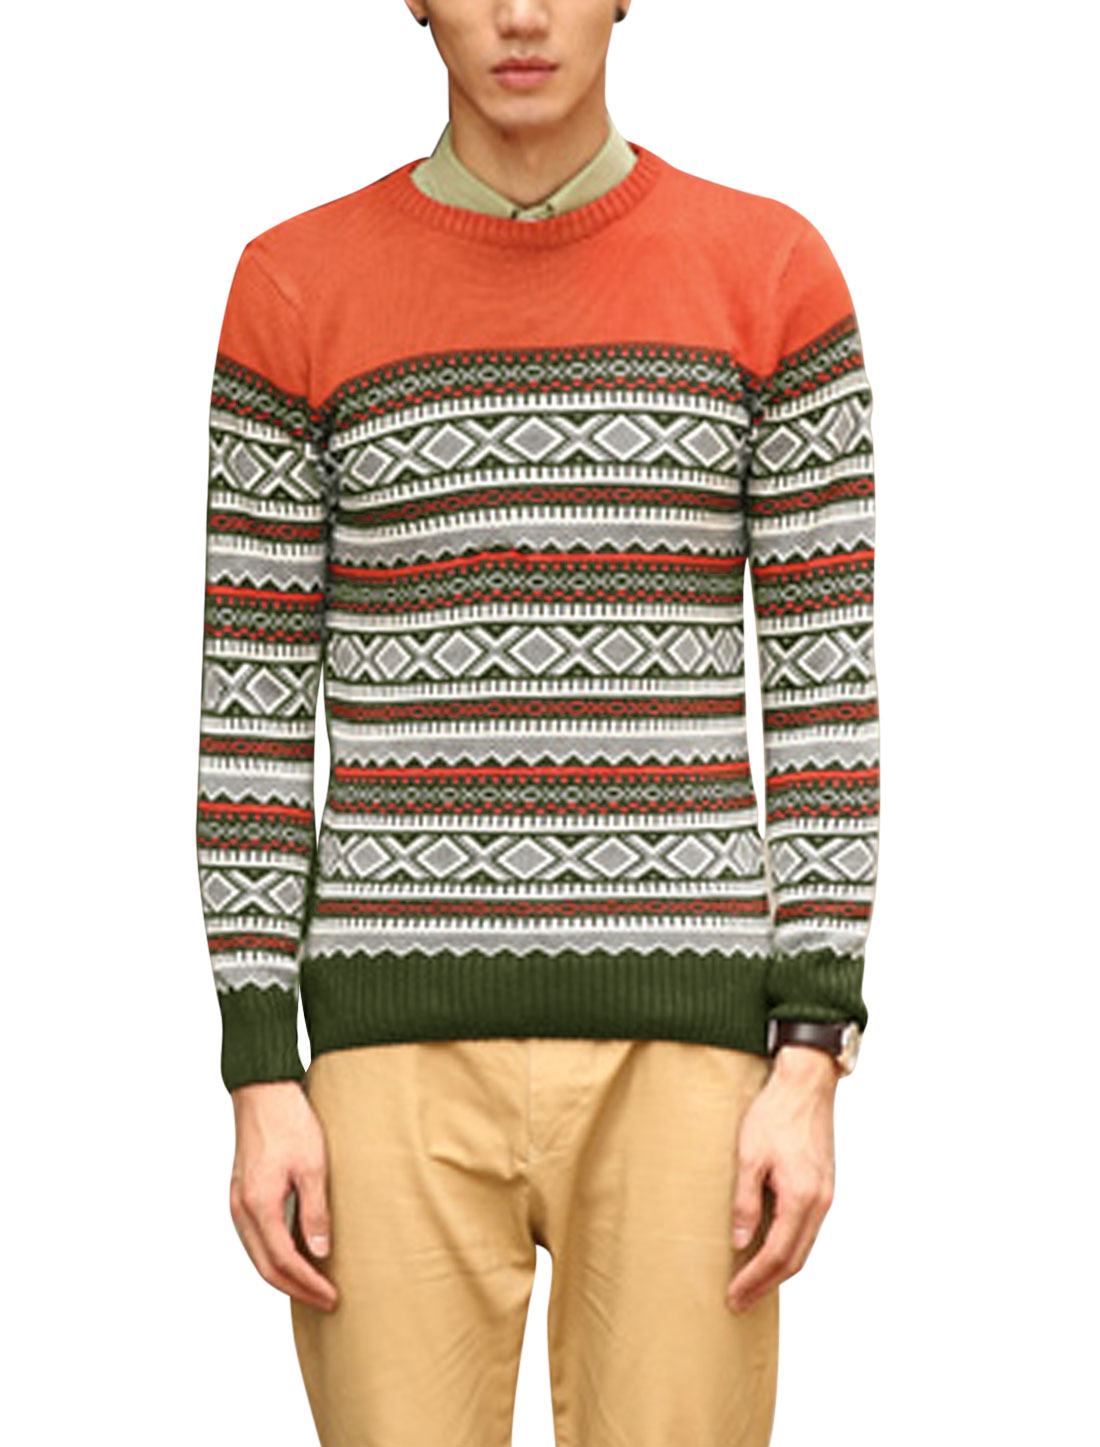 Men Cozy Fit Argyle Pattern Zigzag Pattern Ribbed Cuffs Sweater Orange S